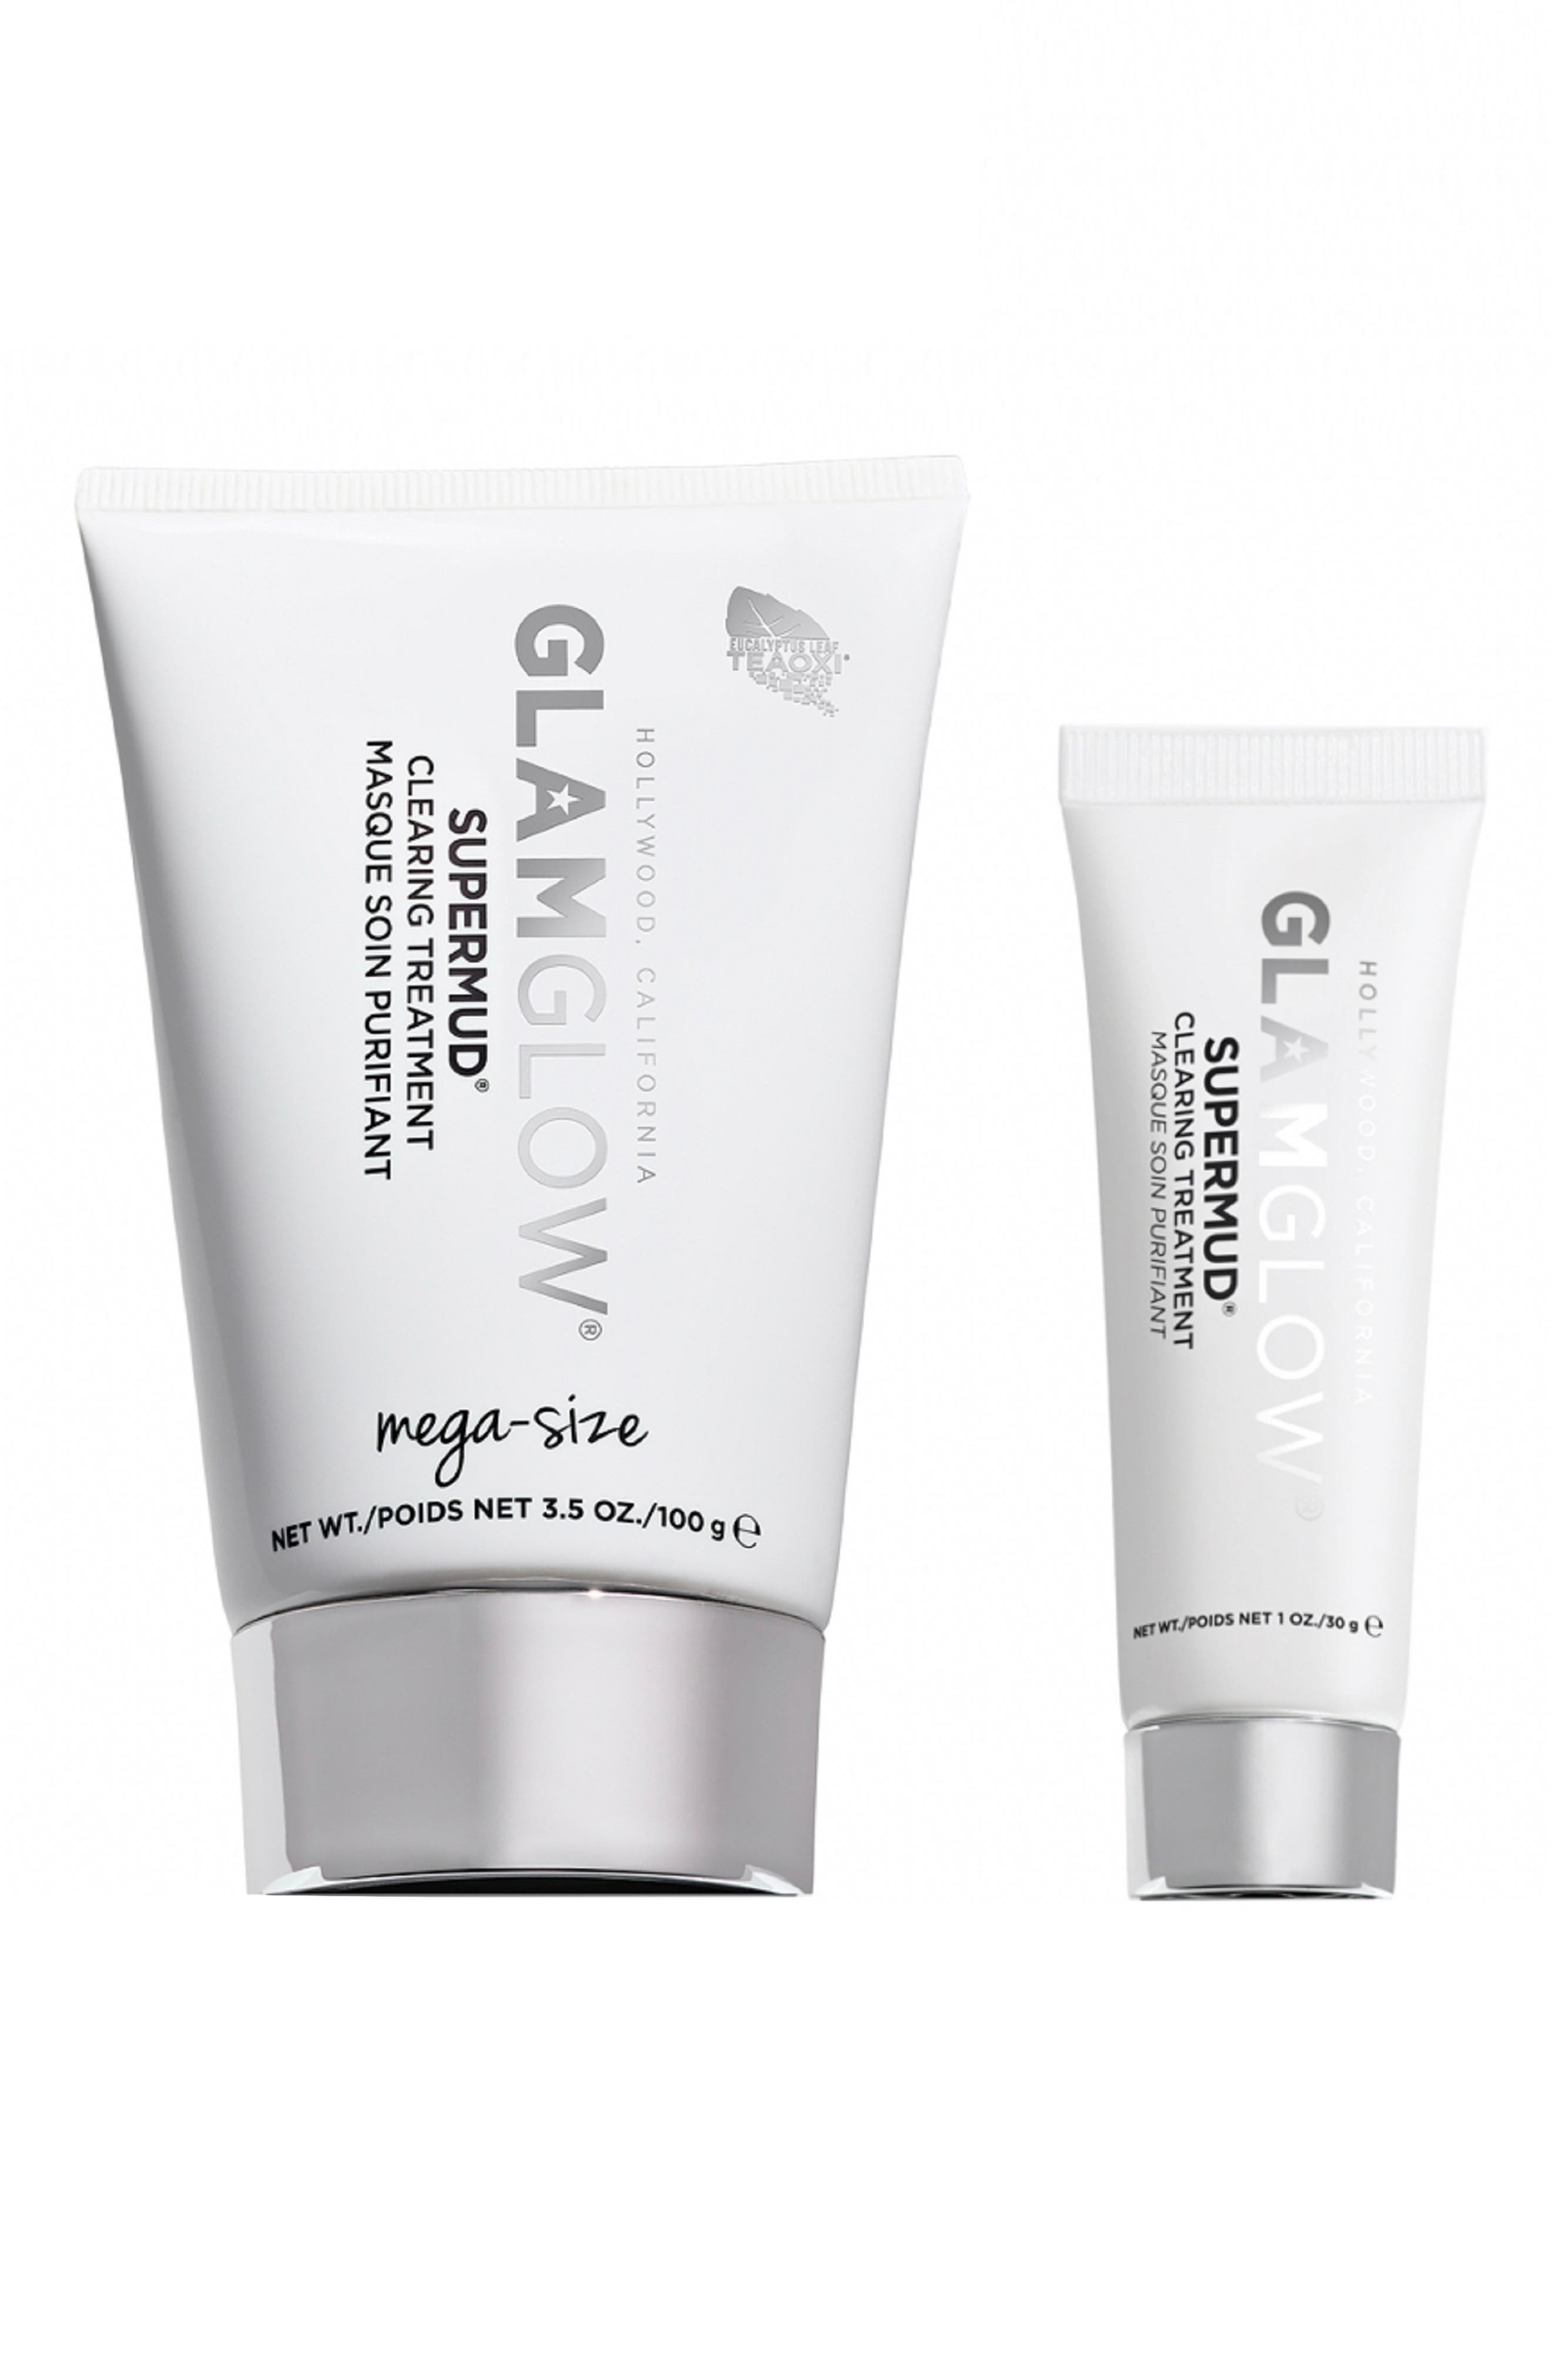 Glamglow Supermud Clearing Treatment Mask Set-$99 Value